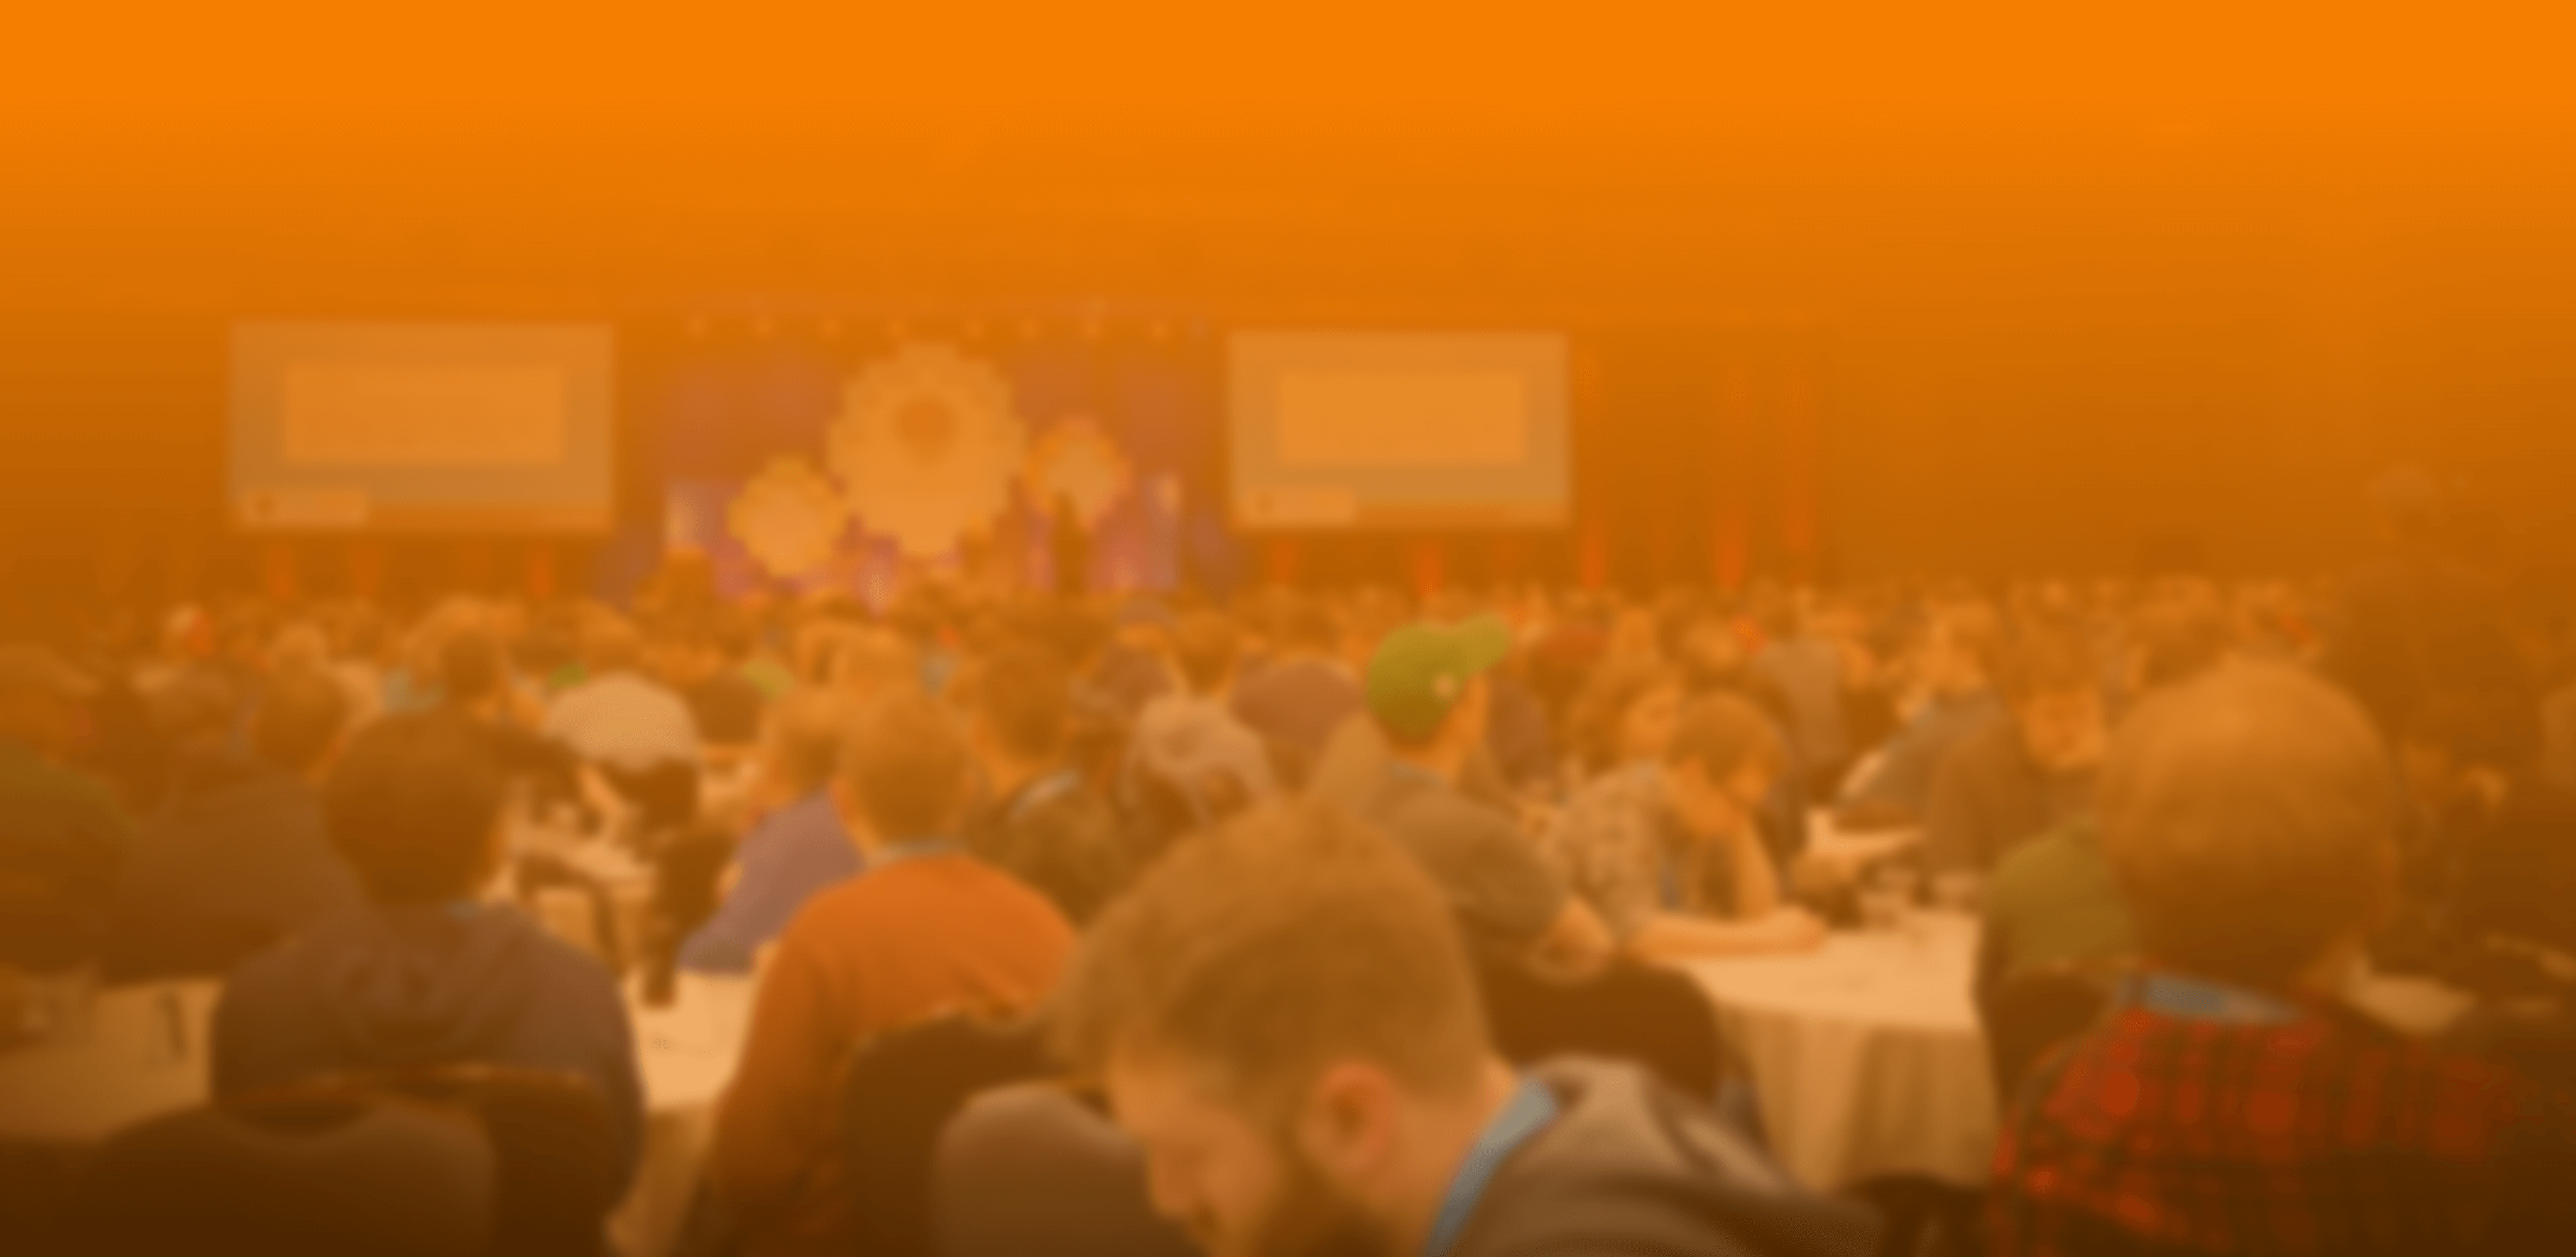 codemash crowd background